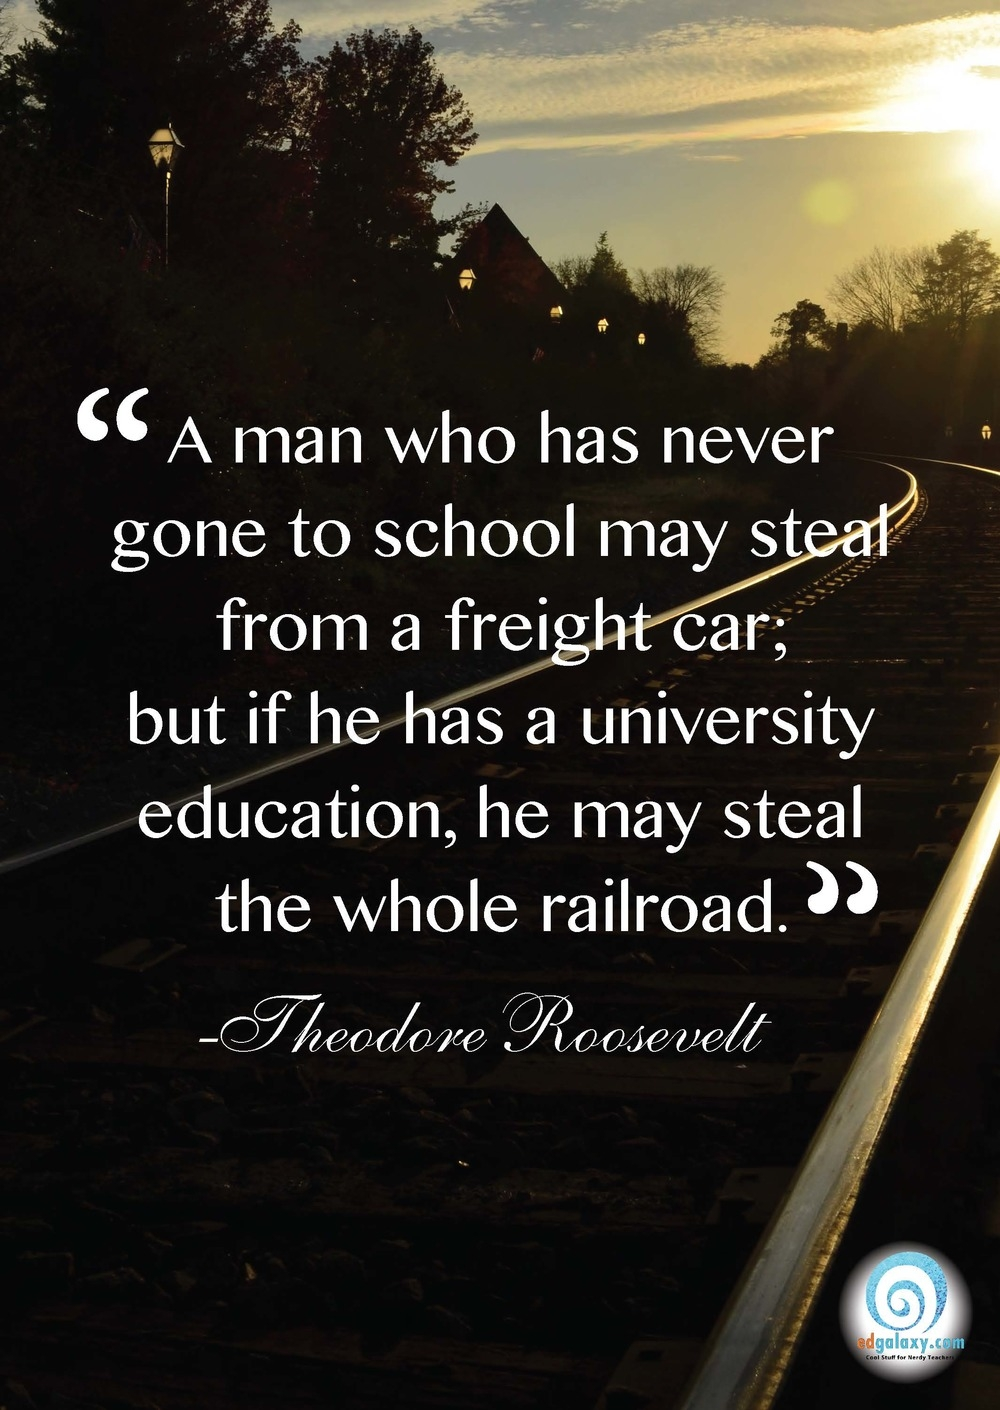 Exclusive Obtain Fantastic Education Quotes Famous Quotes For Teachers And Students - About Quote